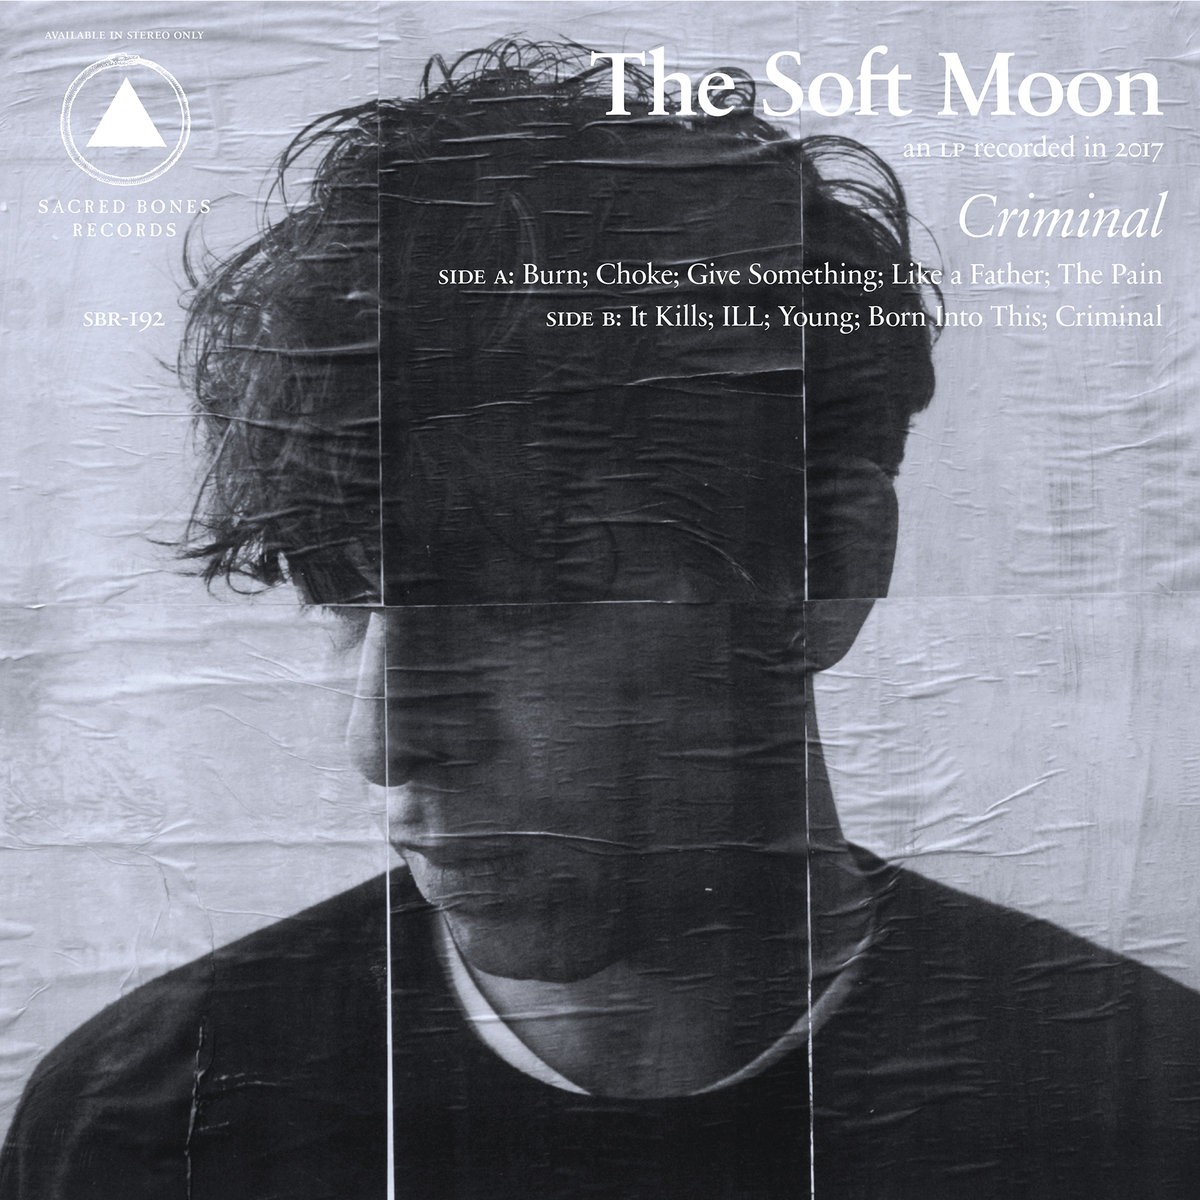 The Soft Moon - Criminal - CD